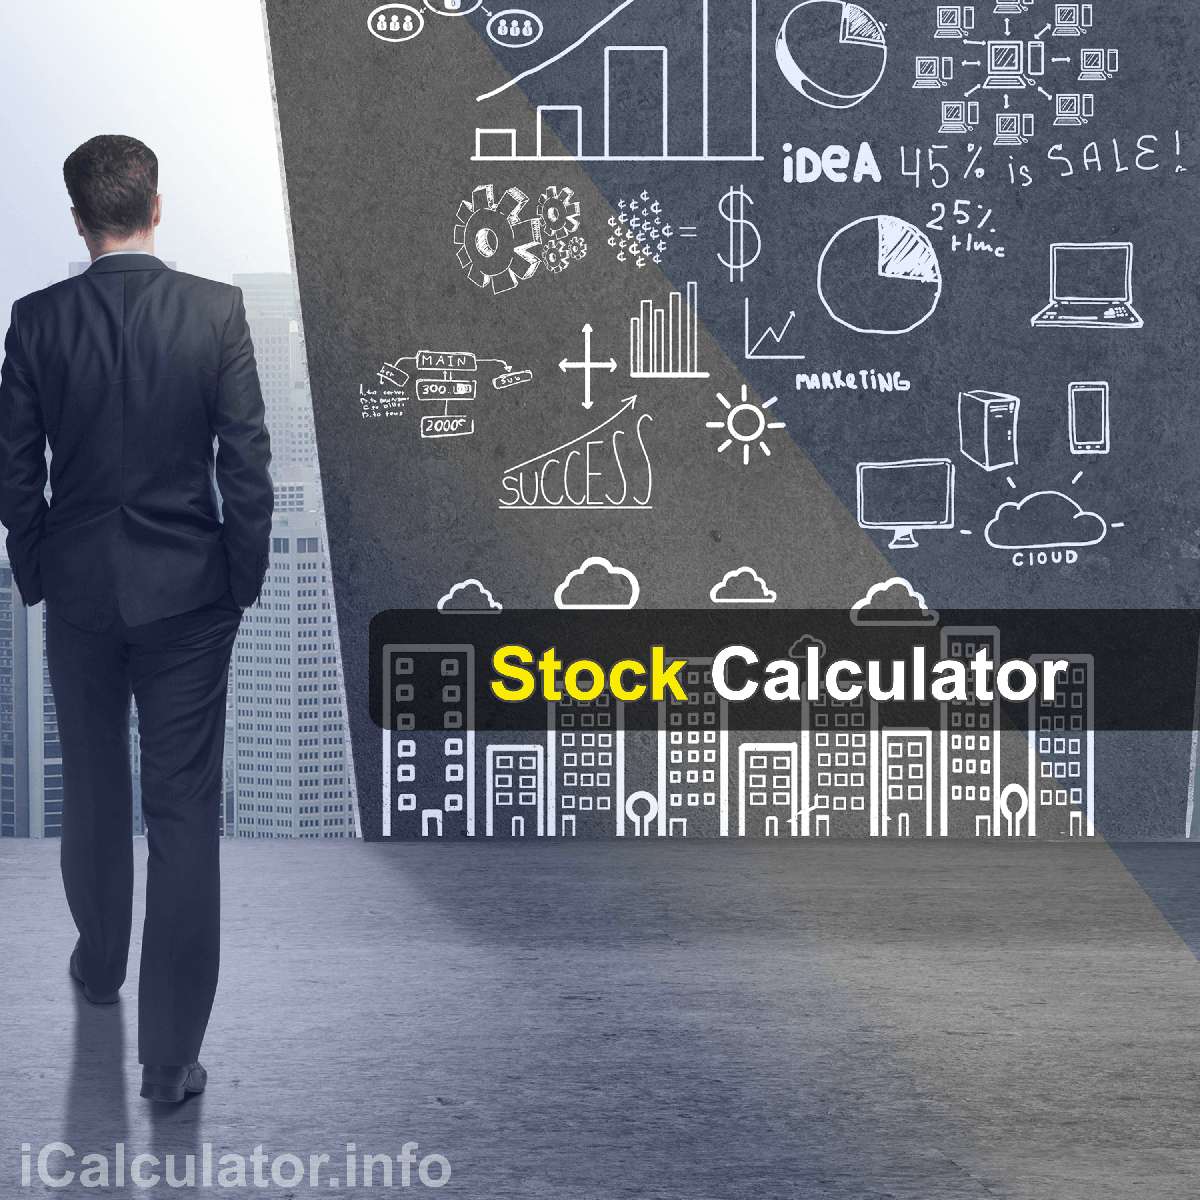 Stock Profit Calculator. This image provides details of how to calculate stock profit using a calculator and notepad. By using the stock profit formula, the Stock Profit Calculator provides a true calculation of the actual value of returns on your investments